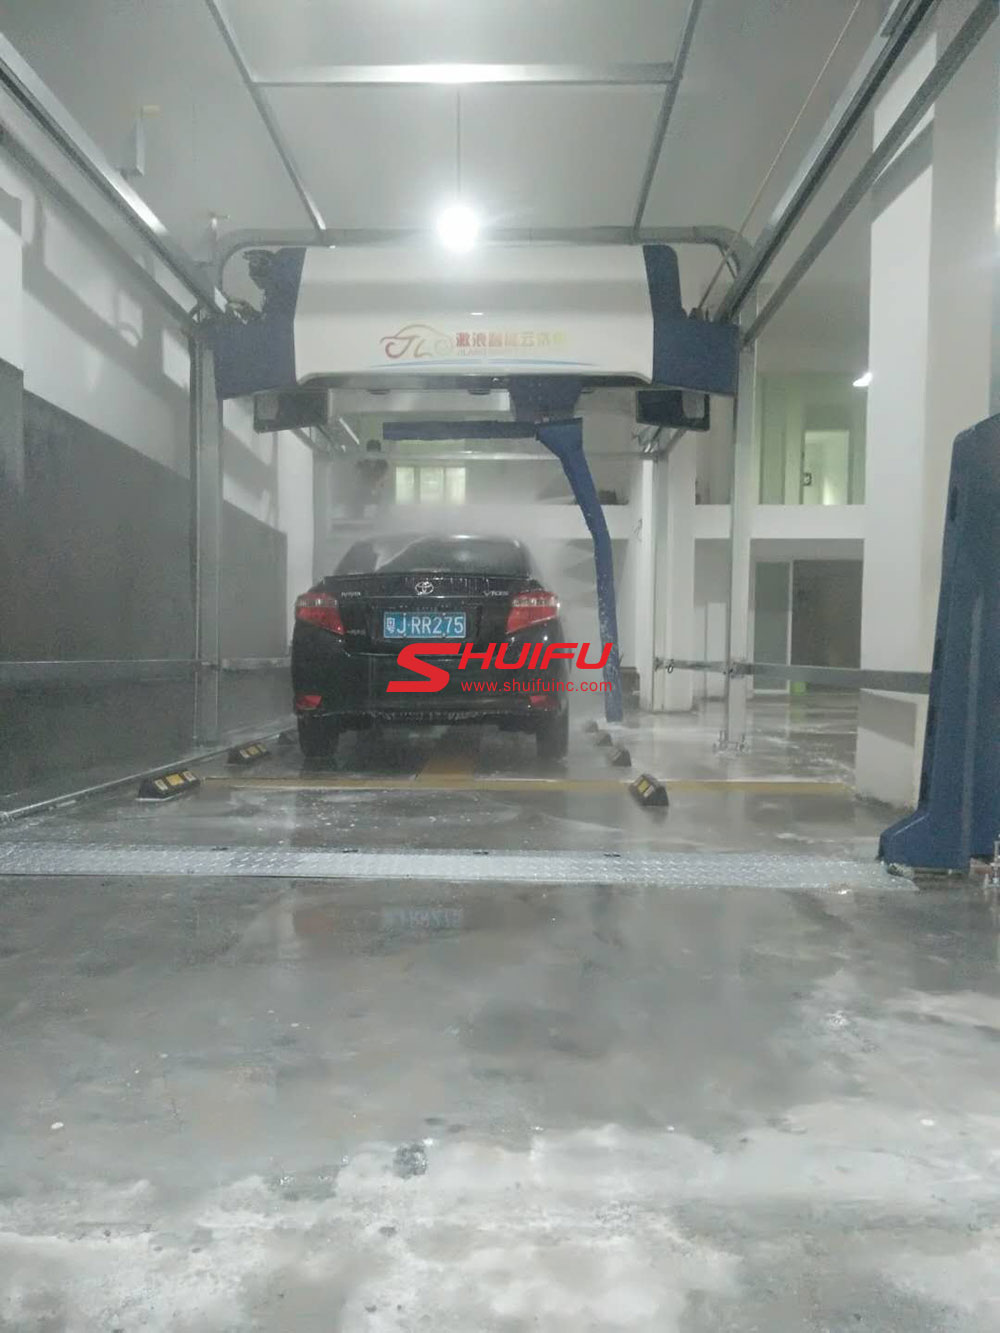 Automatic-car-wash-machine-AXE-OVERHEAD-touchless-carwash-system-installation-finished-in-Asia-manufactured-by-SHUIFU-CHINA-12